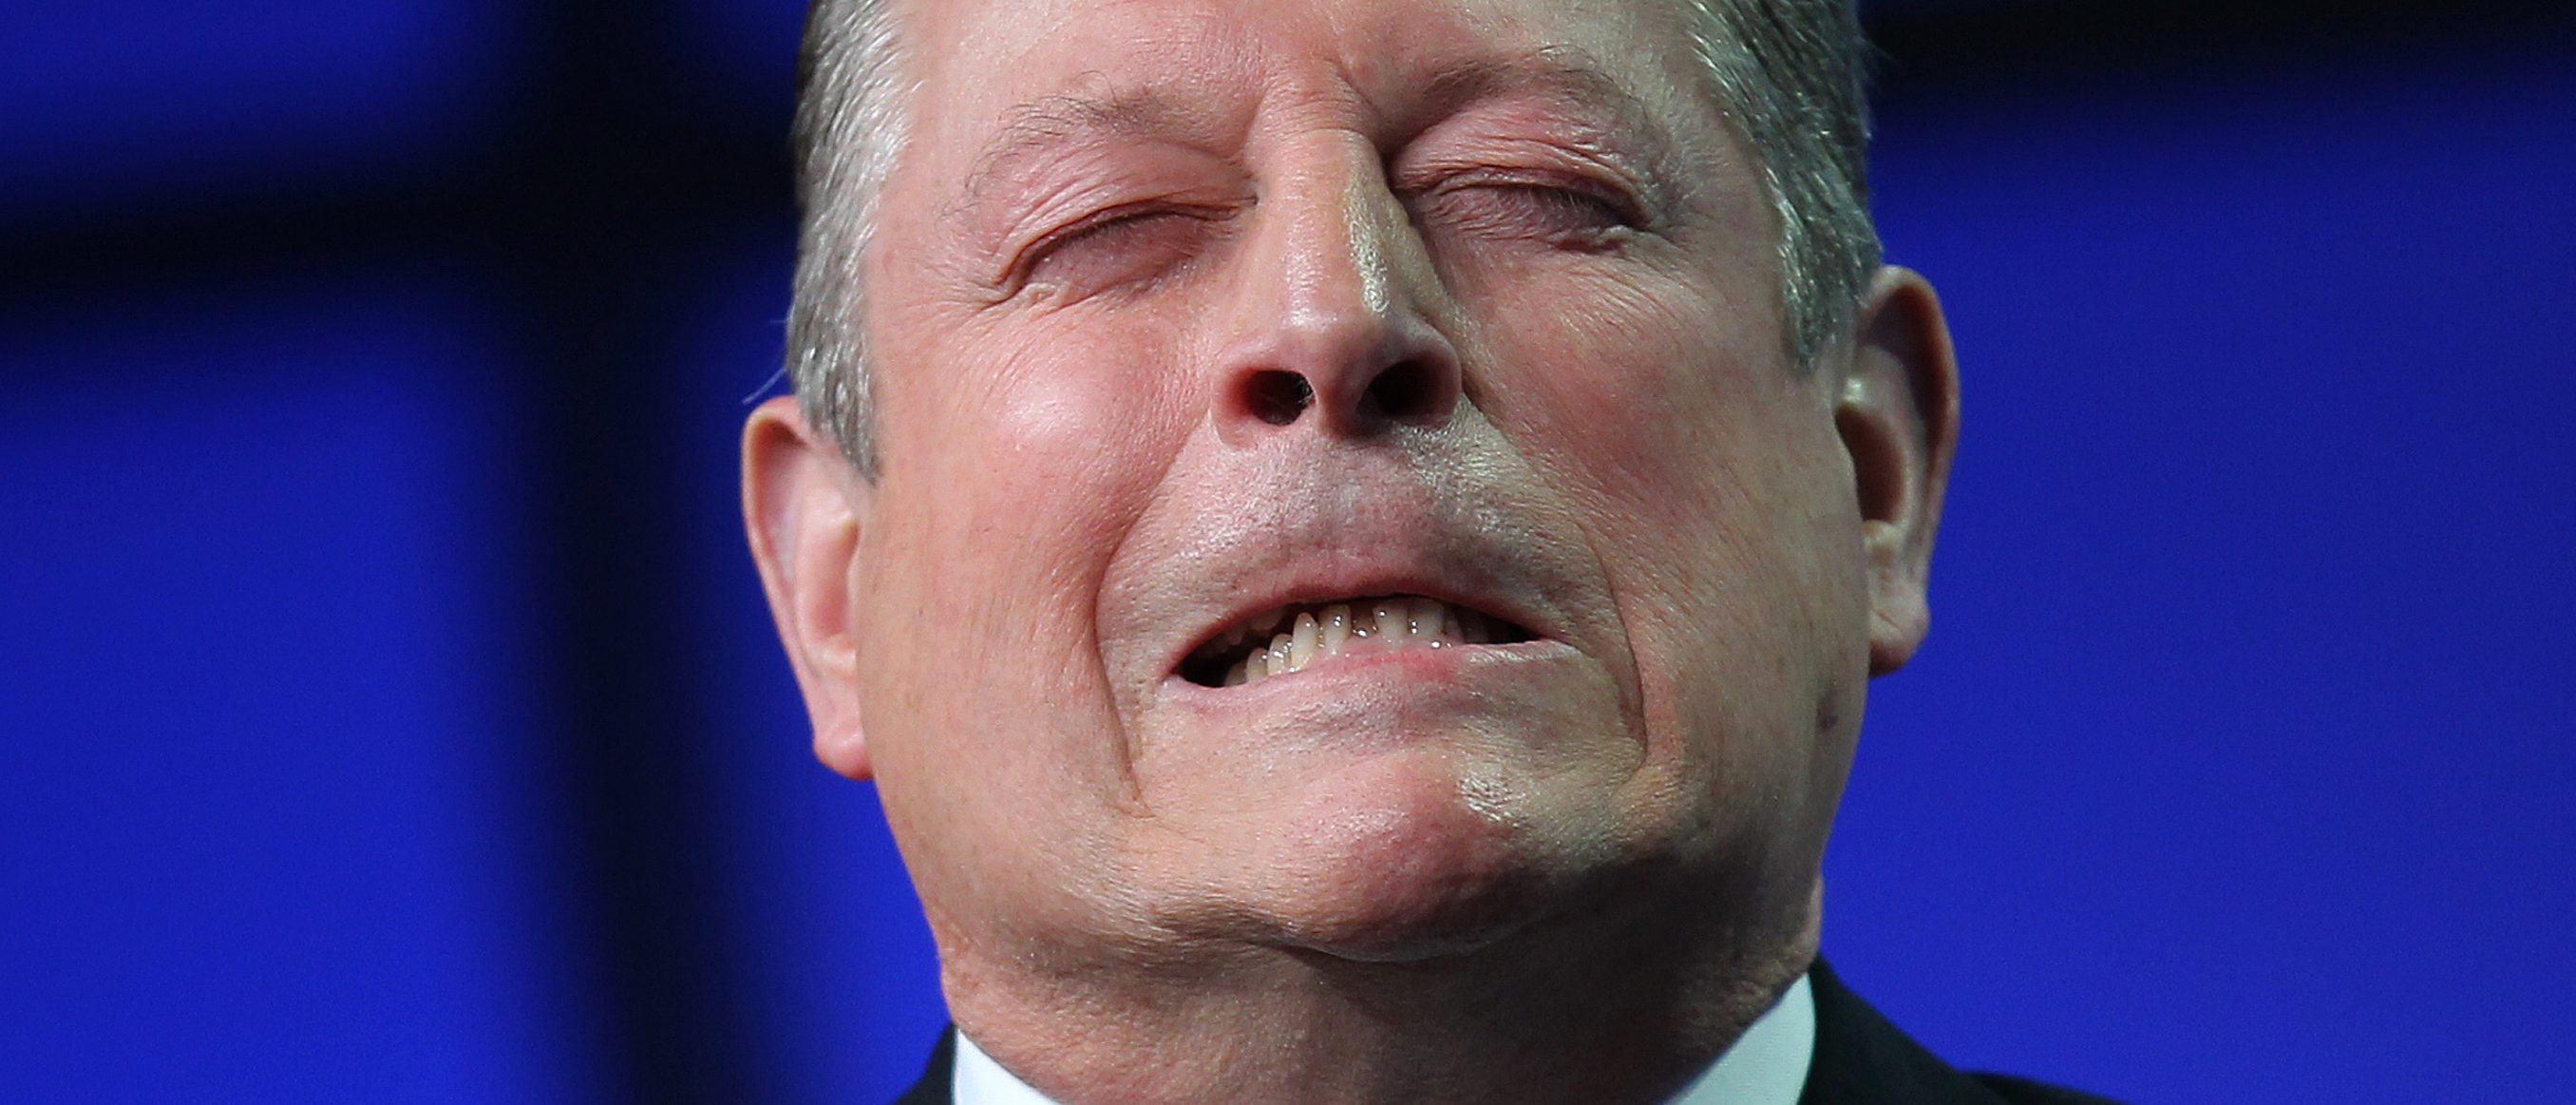 Former U.S. Vice President Al Gore emphasizes a point as he speaks at the Milken Institute Global Conference in Beverly Hills, California April 30, 2013.  REUTERS/David Ncnew (UNITED STATES - Tags: BUSINESS POLITICS) - GM1E9510OEN01